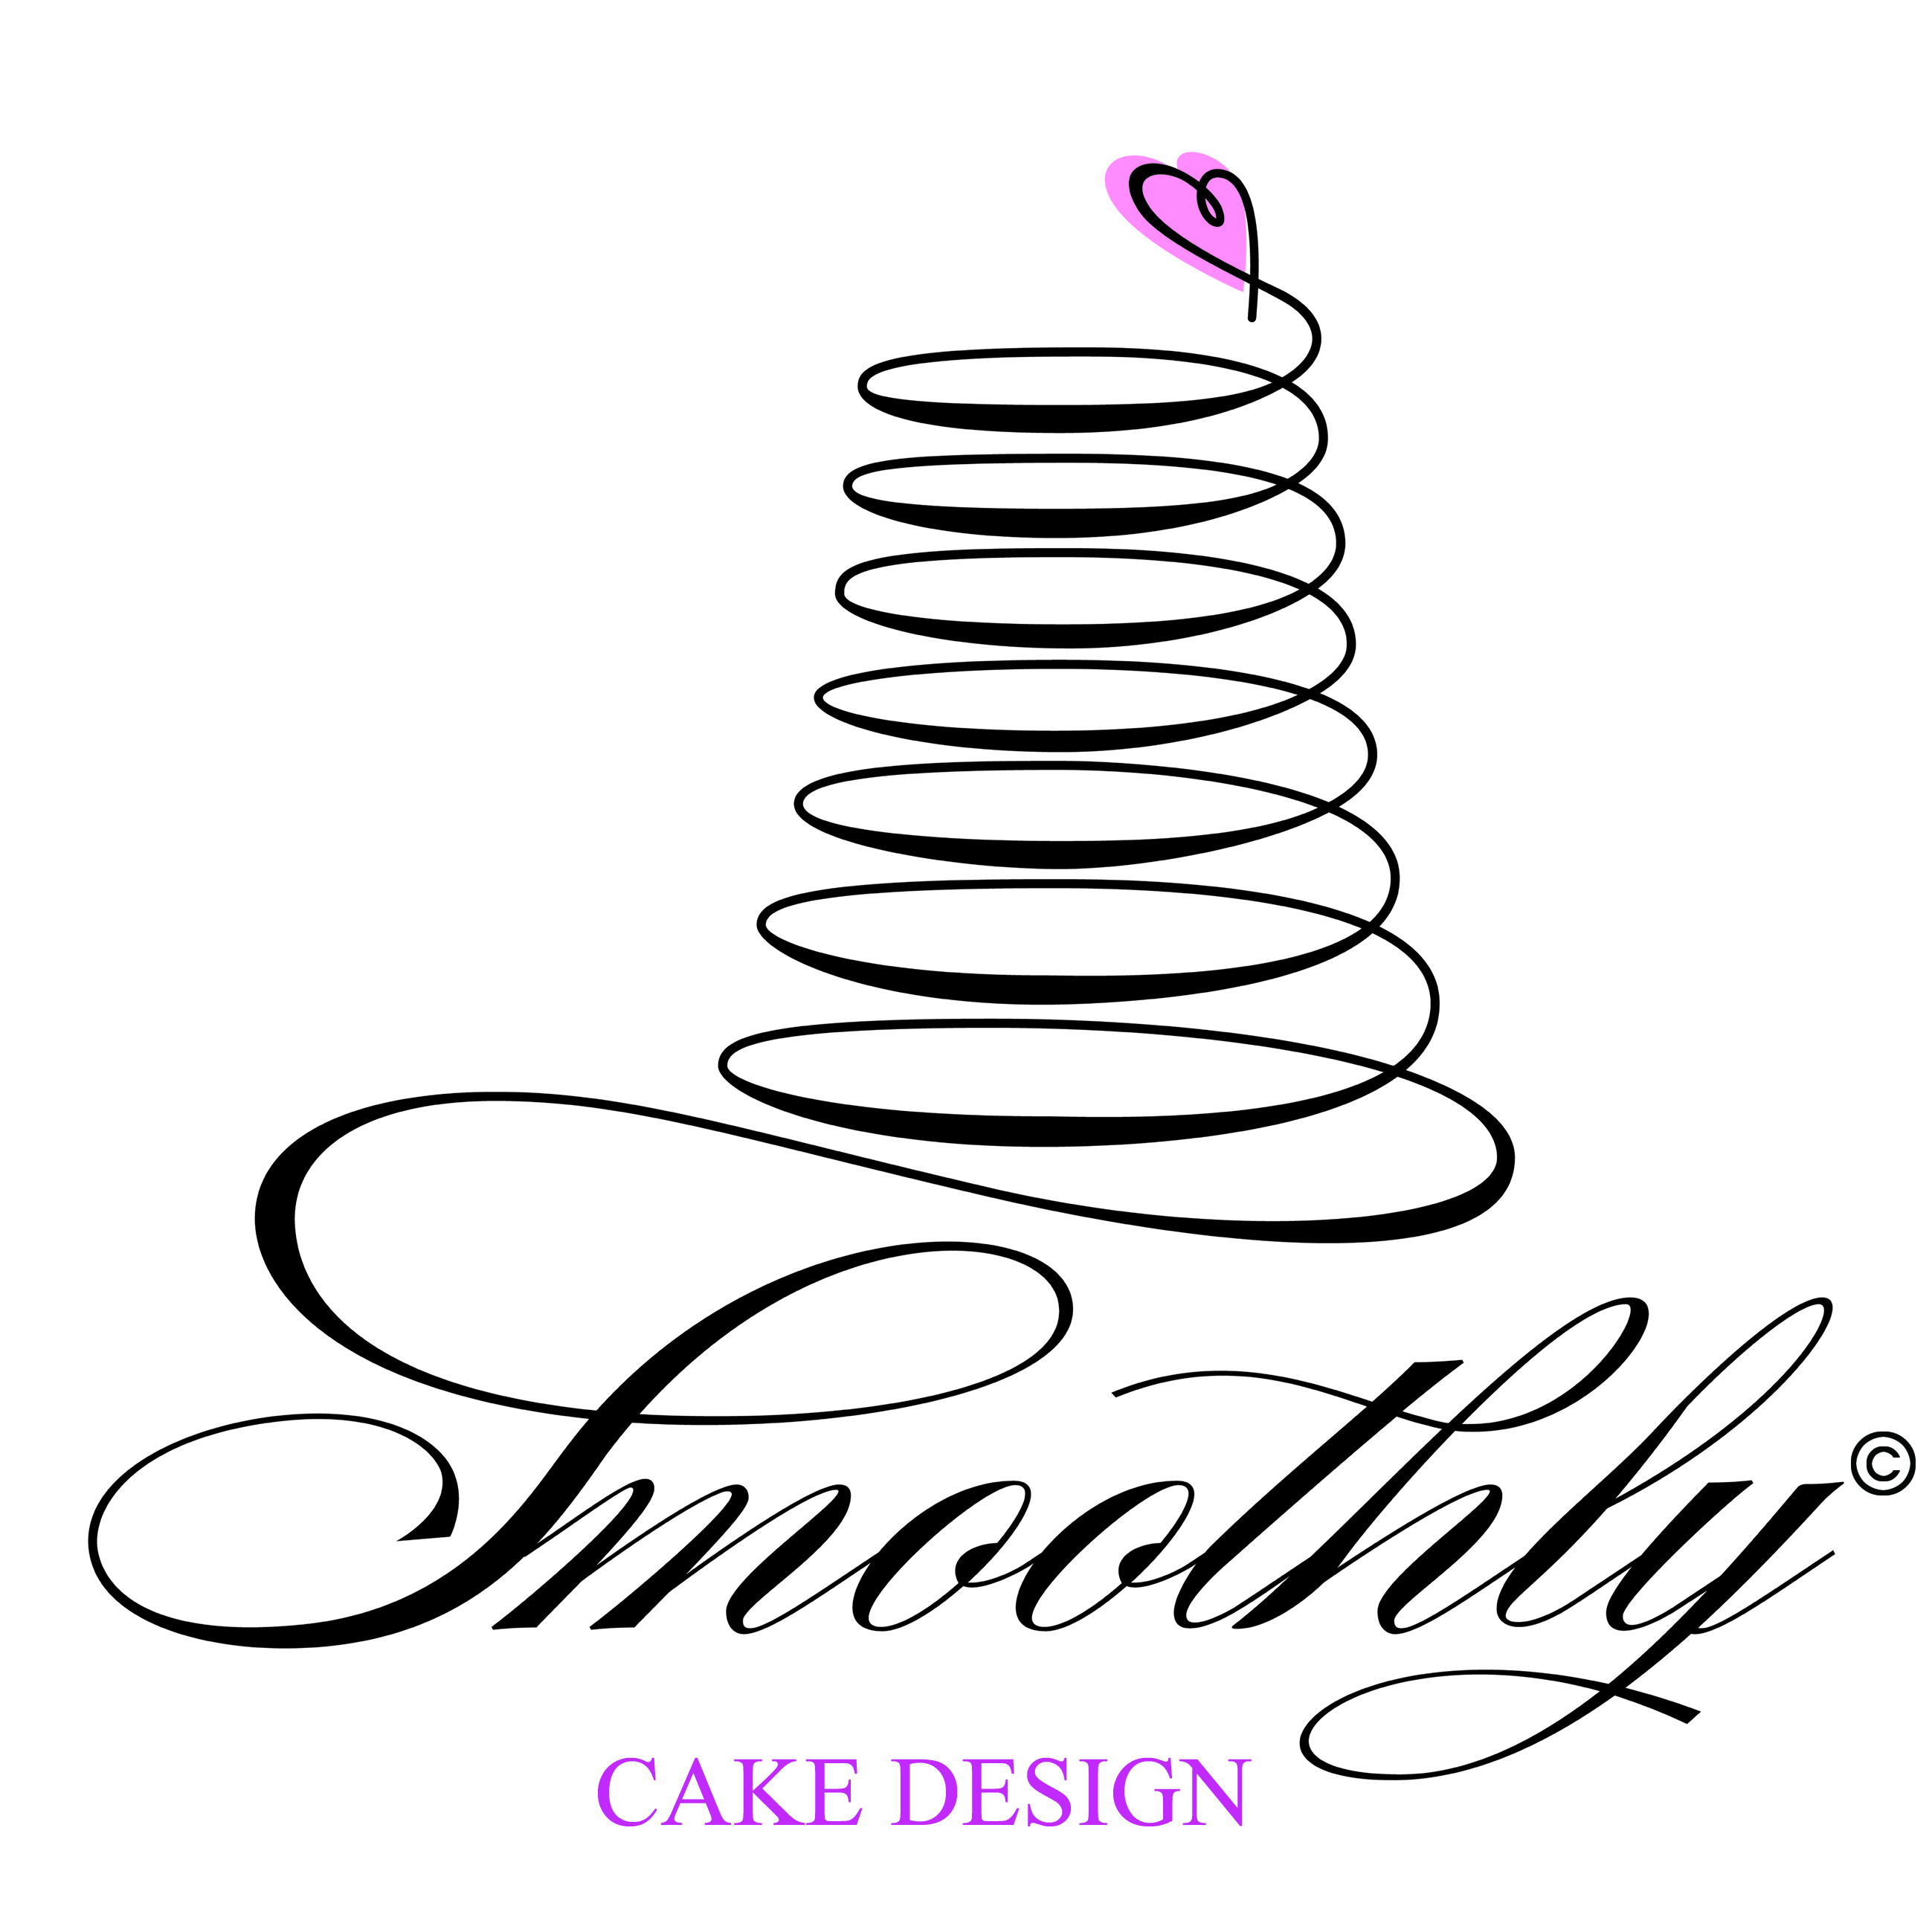 smoothly cake design - The HandartThe Handart